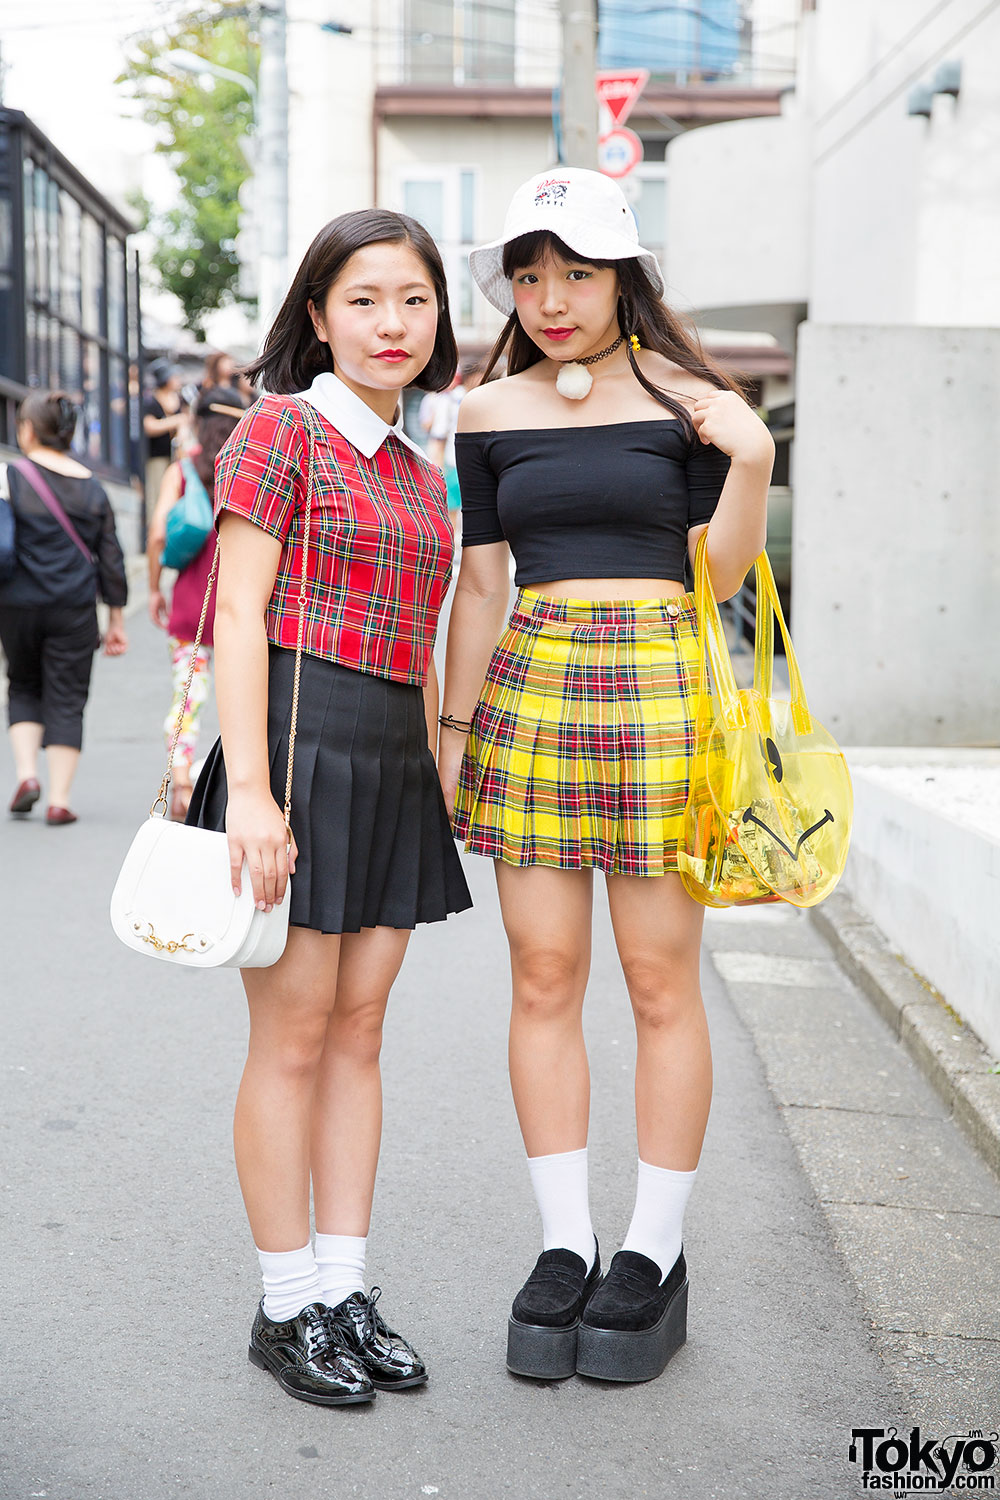 Top 10 Japanese Street Fashion Trends Summer 2014